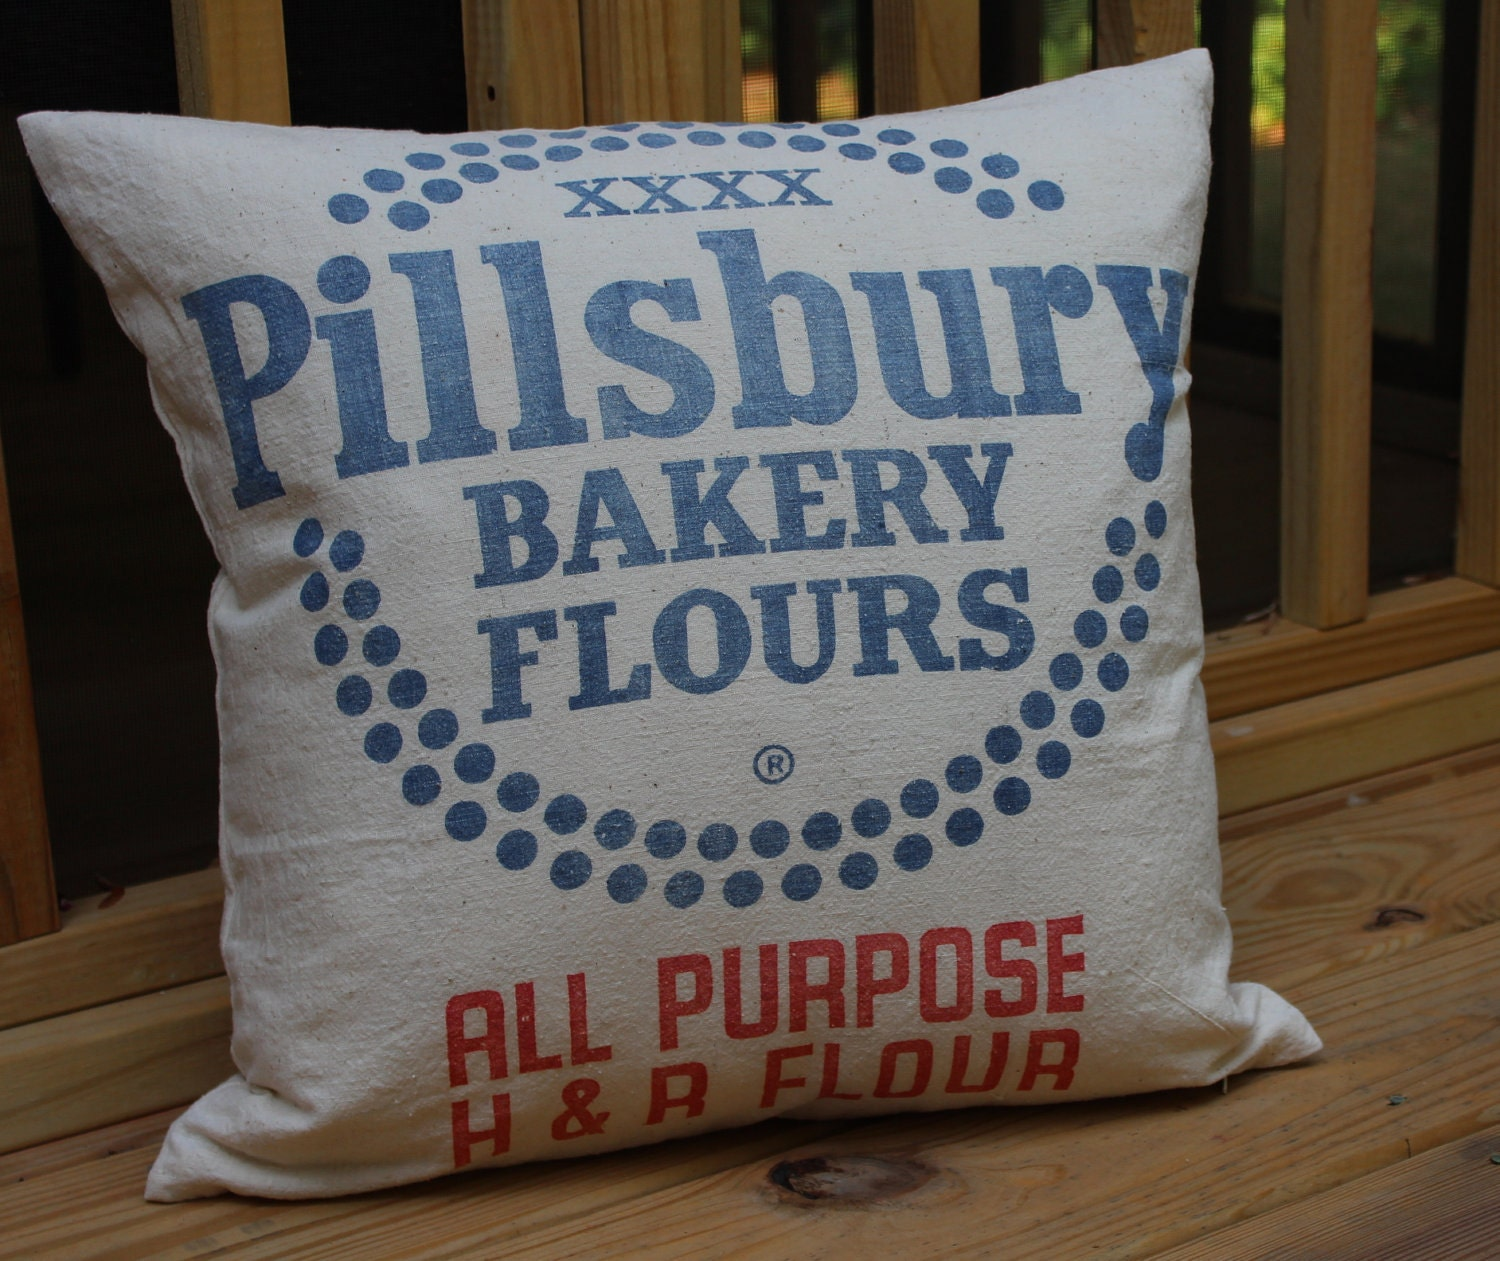 Vintage Flour Sack Pillow Cover 18 Inch Pillsbury Bakery